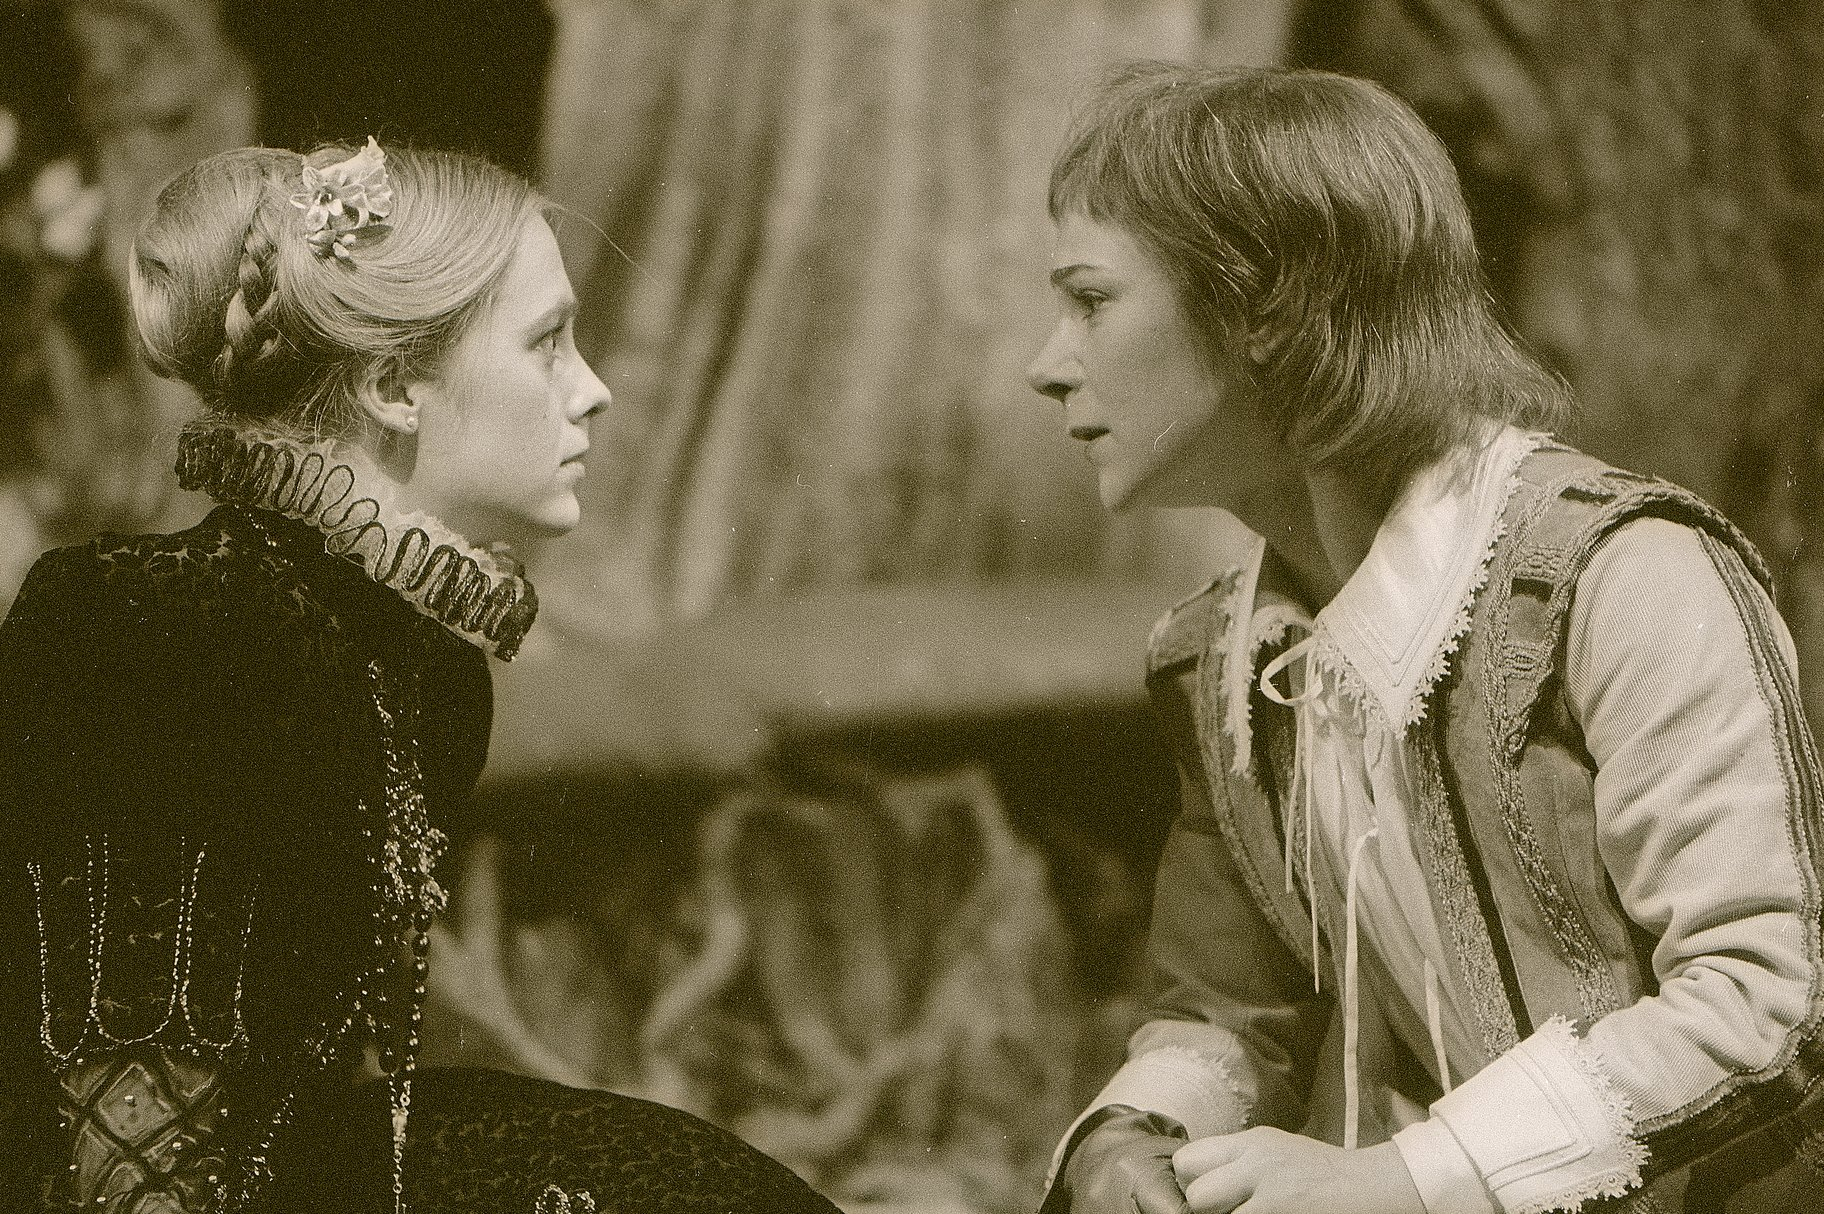 Olivia stares earnestly at 'Cesario' in the 1983 production of Twelfth Night.